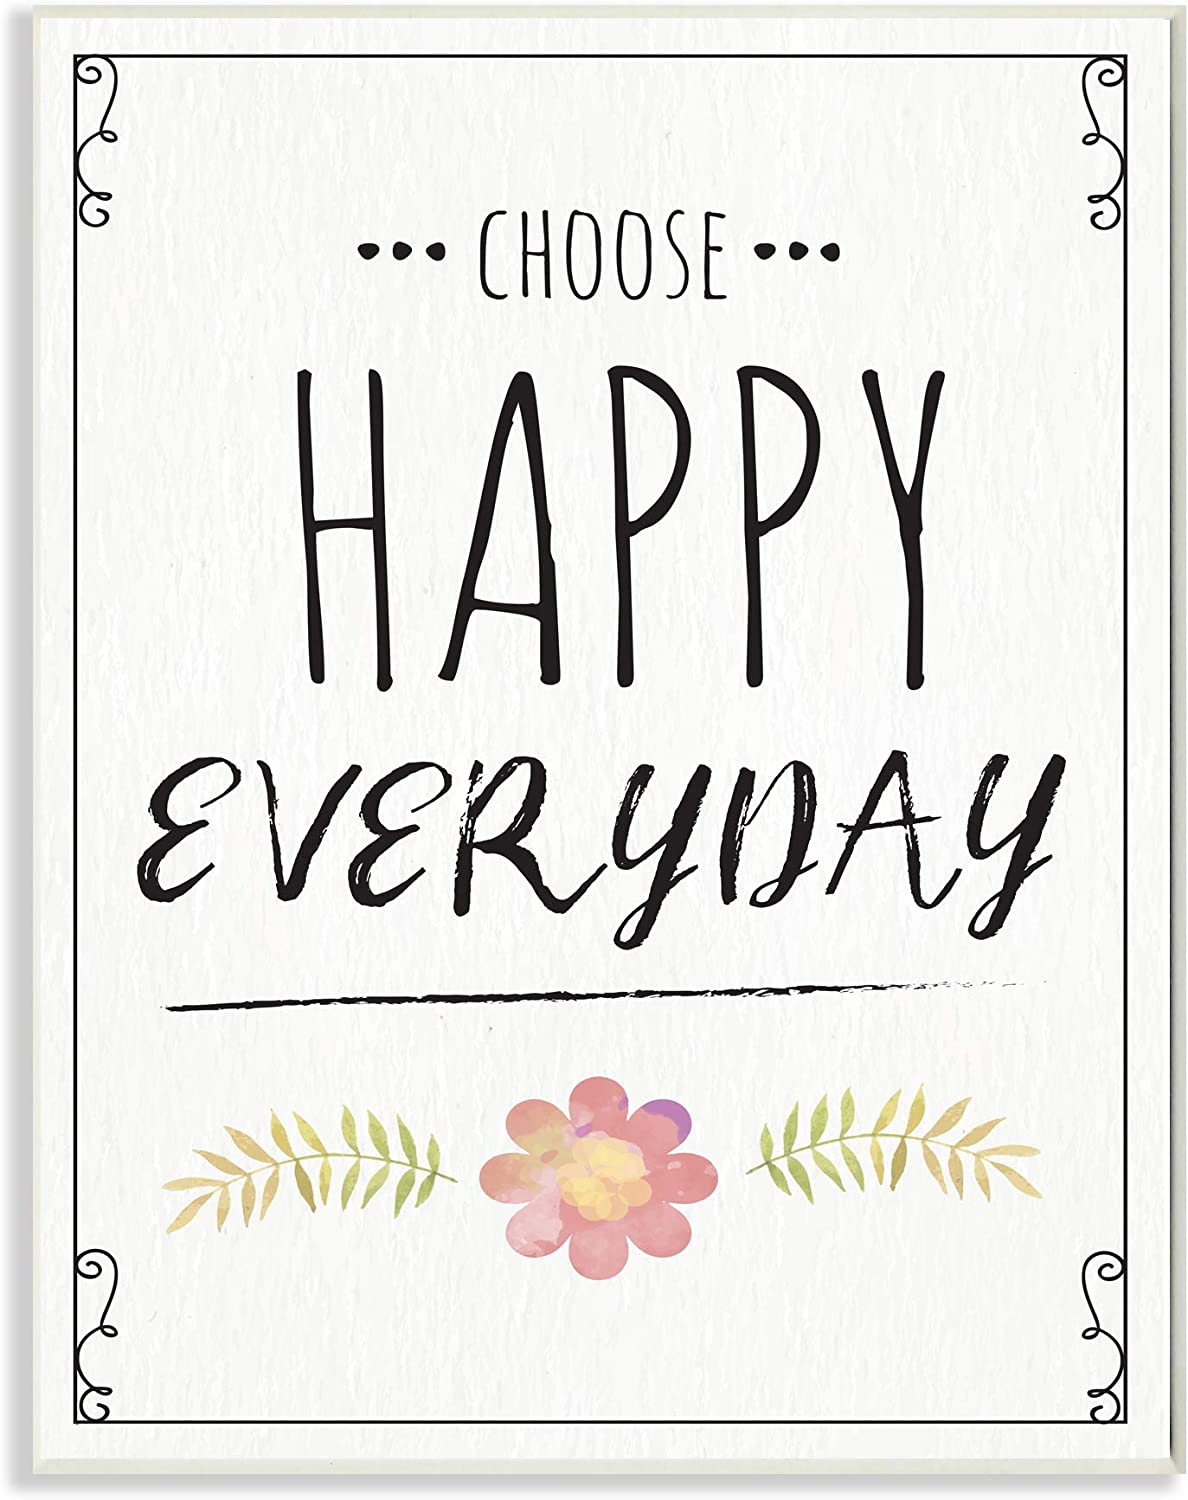 The Stupell Home Decor Choose Happy Everyday Pink Flower Black and White Wood Look Wall Plaque Art 12x18 Multi-color